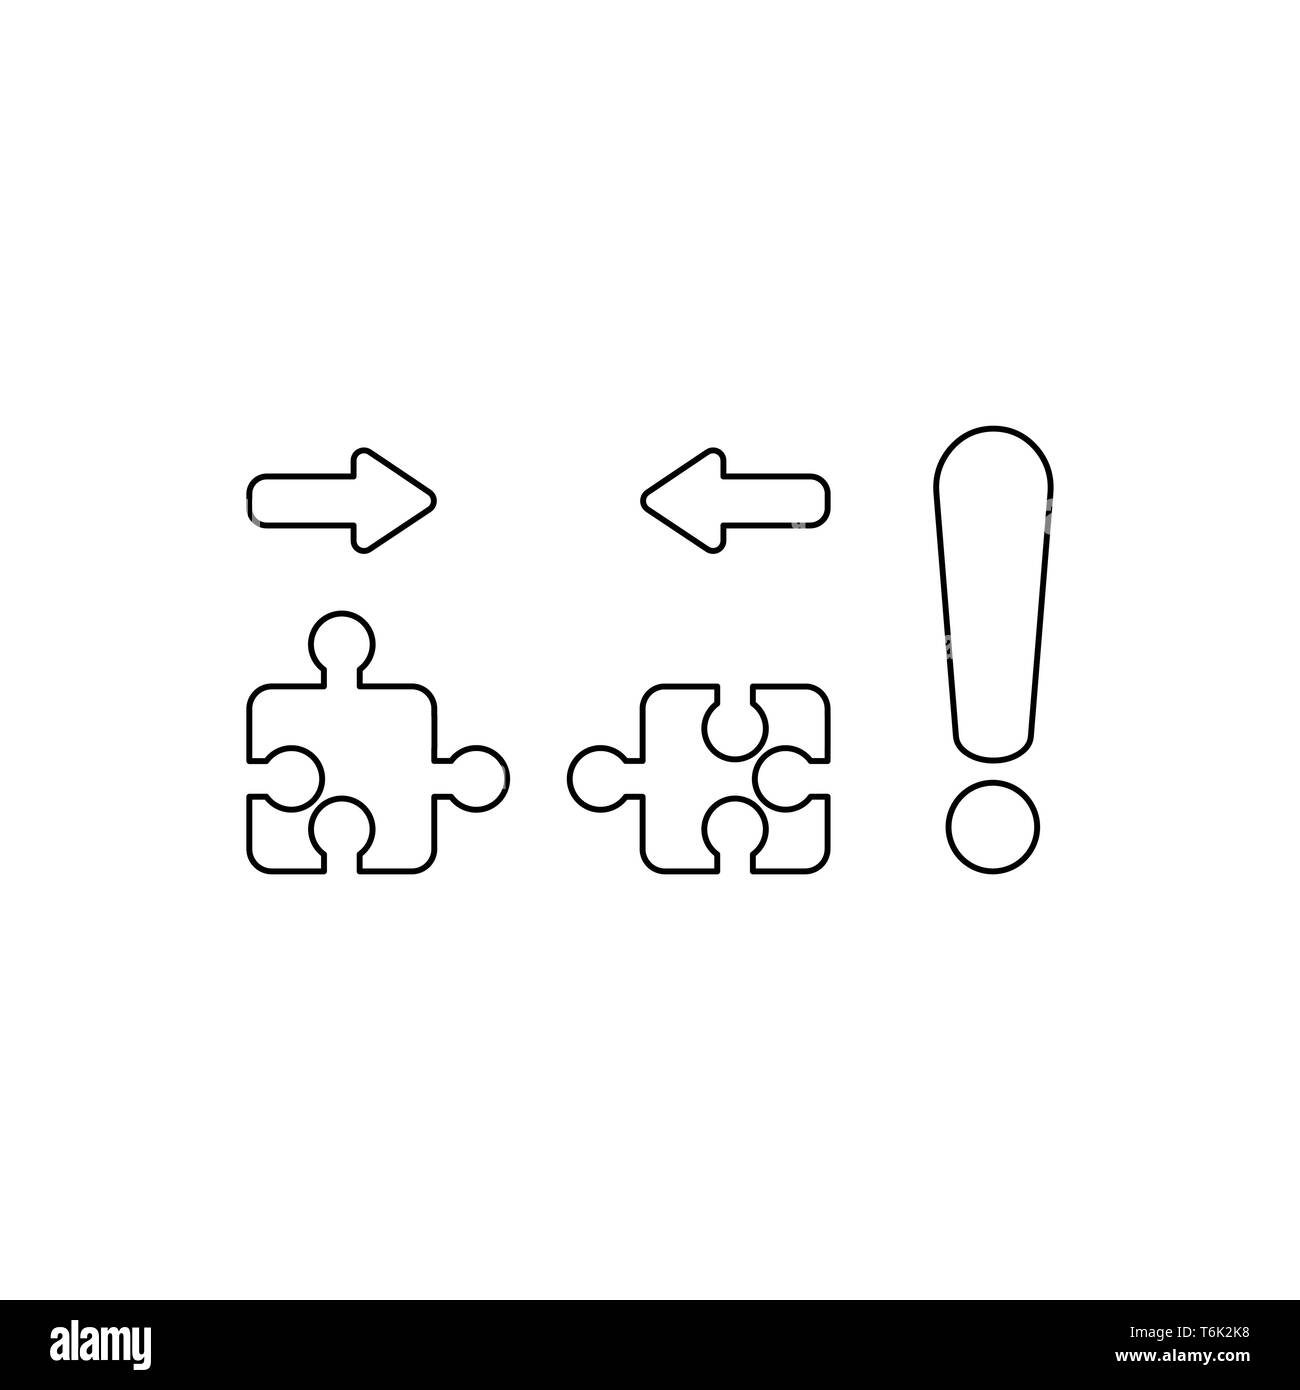 Vector icon concept of two pieces of jigsaw puzzle pieces that are incompatible with each other and red exclamation mark. Black outlines. Stock Vector